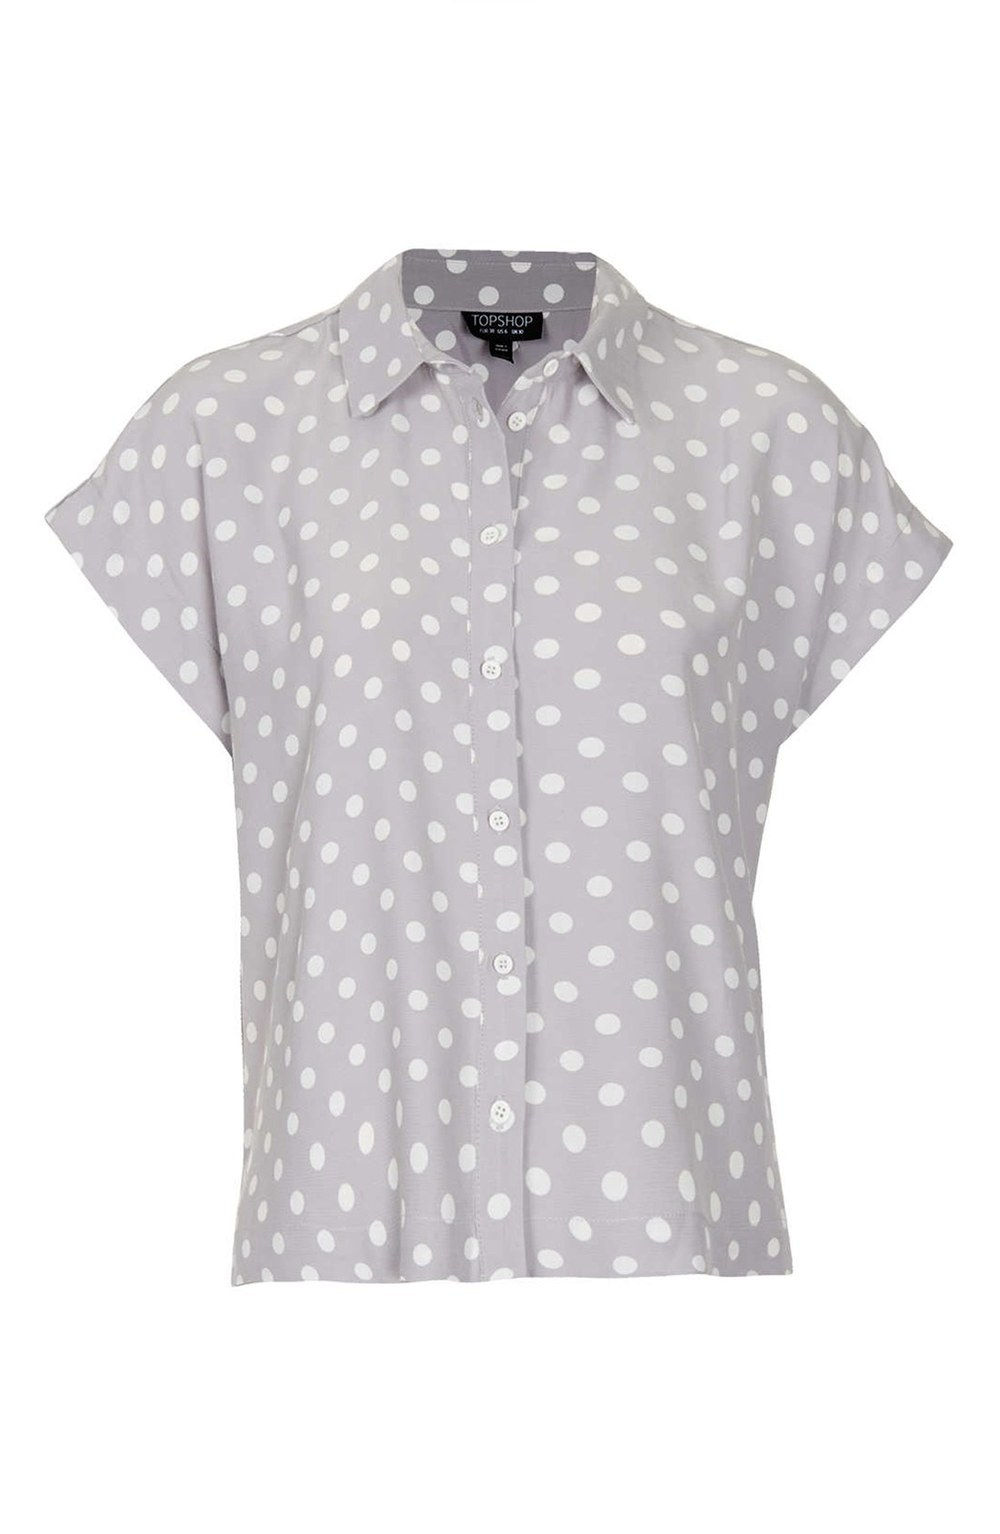 topshop-grey-sophie-polka-dot-crepe-shirt-product-2-14839770-948398137.jpeg